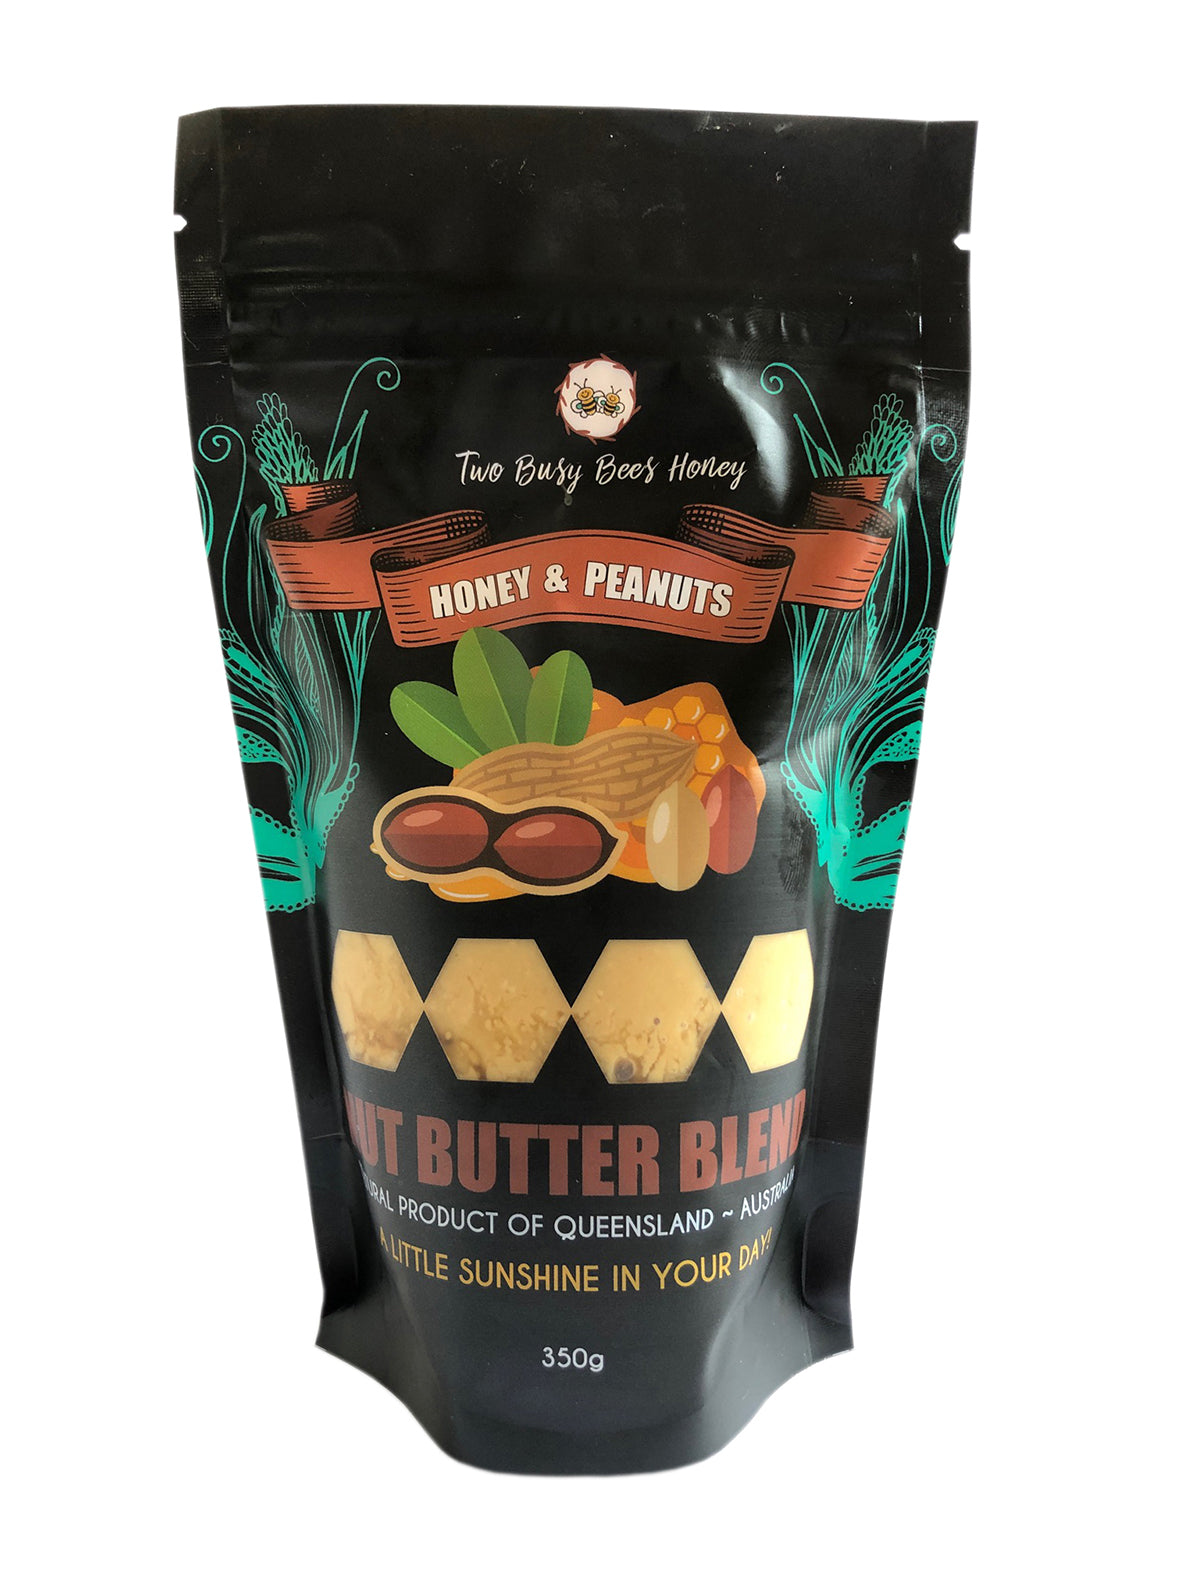 New in store :: Honey and Peanuts - Nut Butter Blend - Pouch Pack